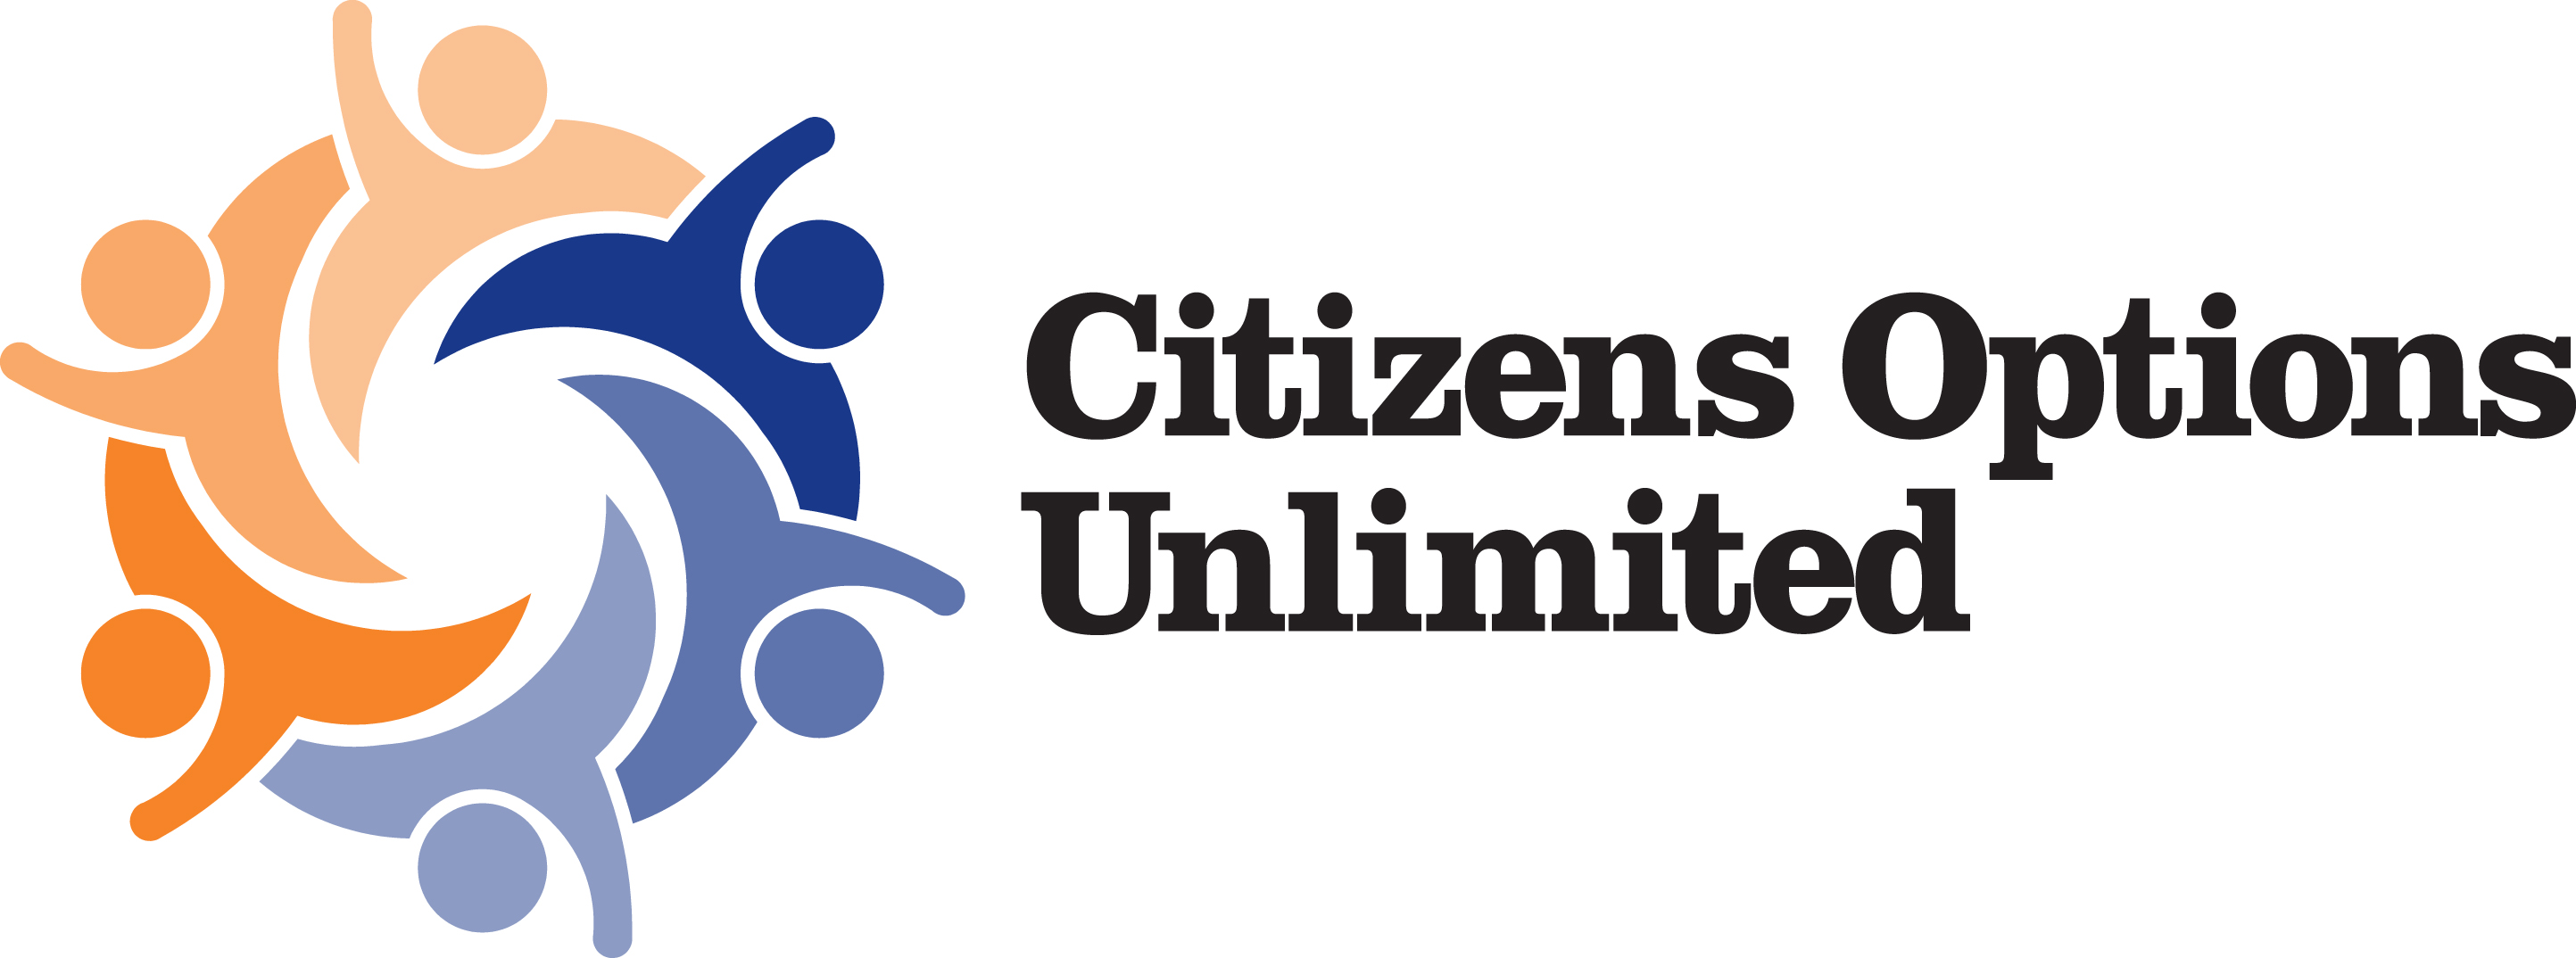 Citizens Options Unlimited Logo.jpg